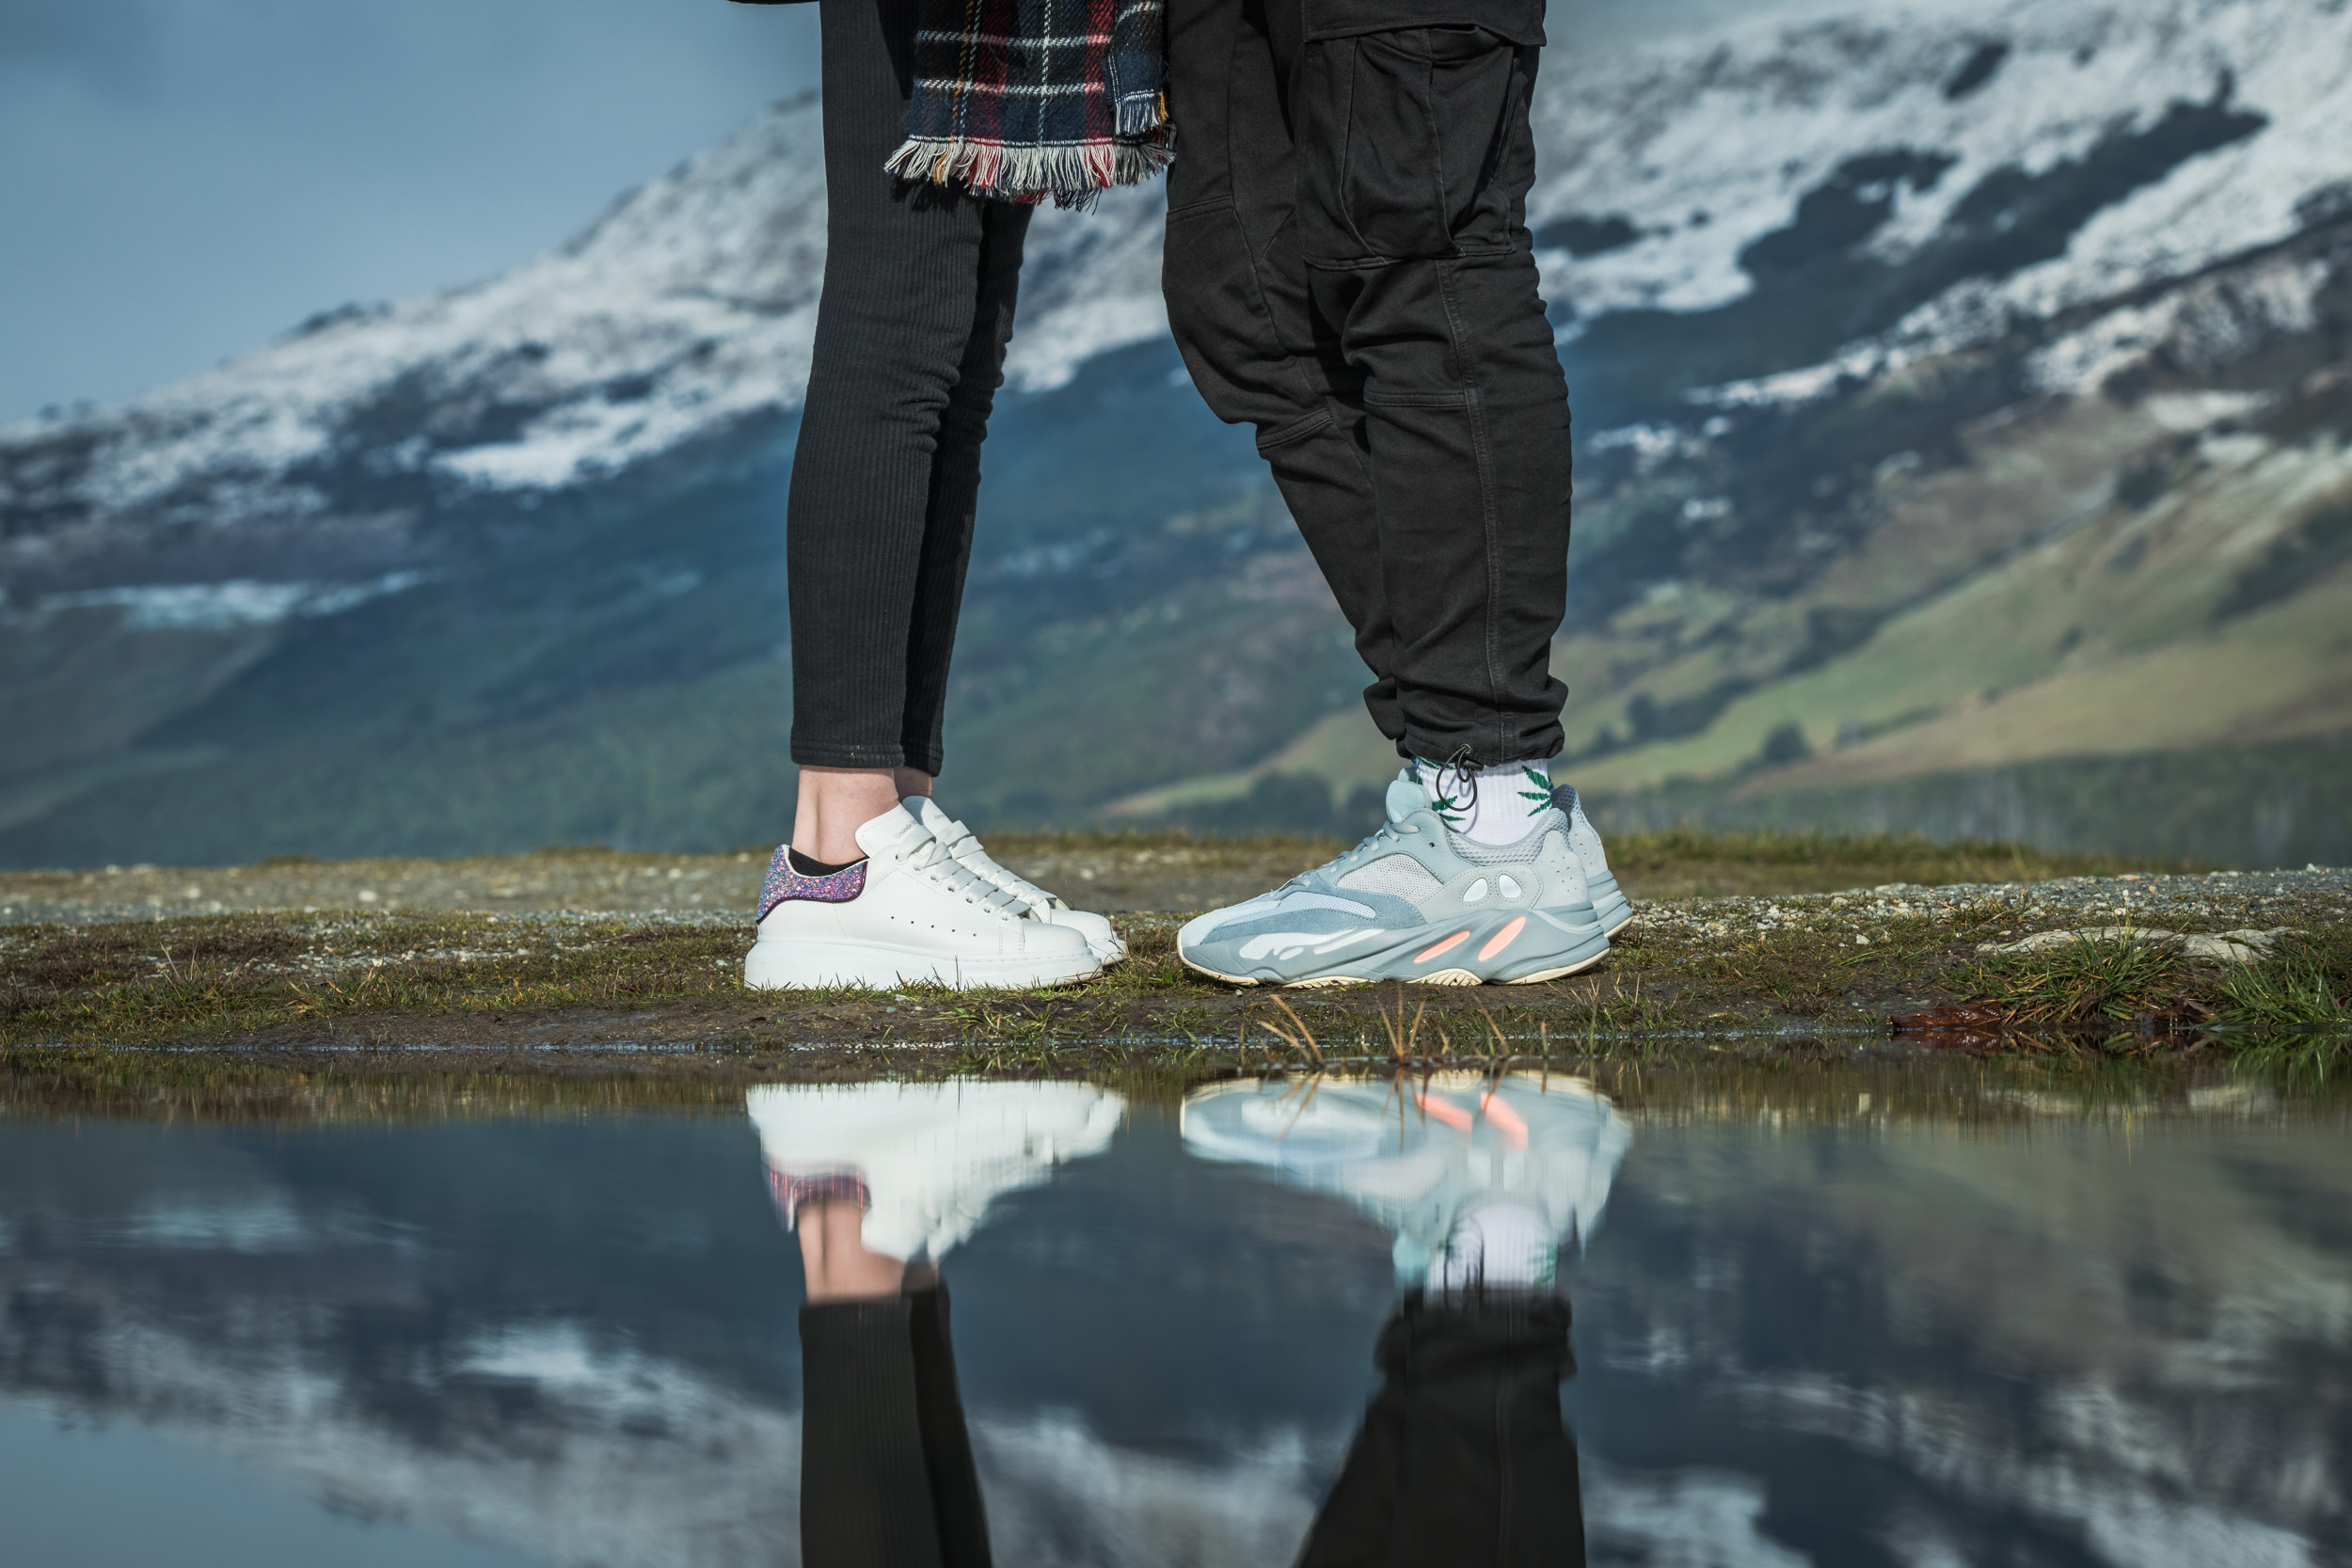 Alexander McQueen and Adidas Yeezy Wave runners - Professional Sneaker Photography